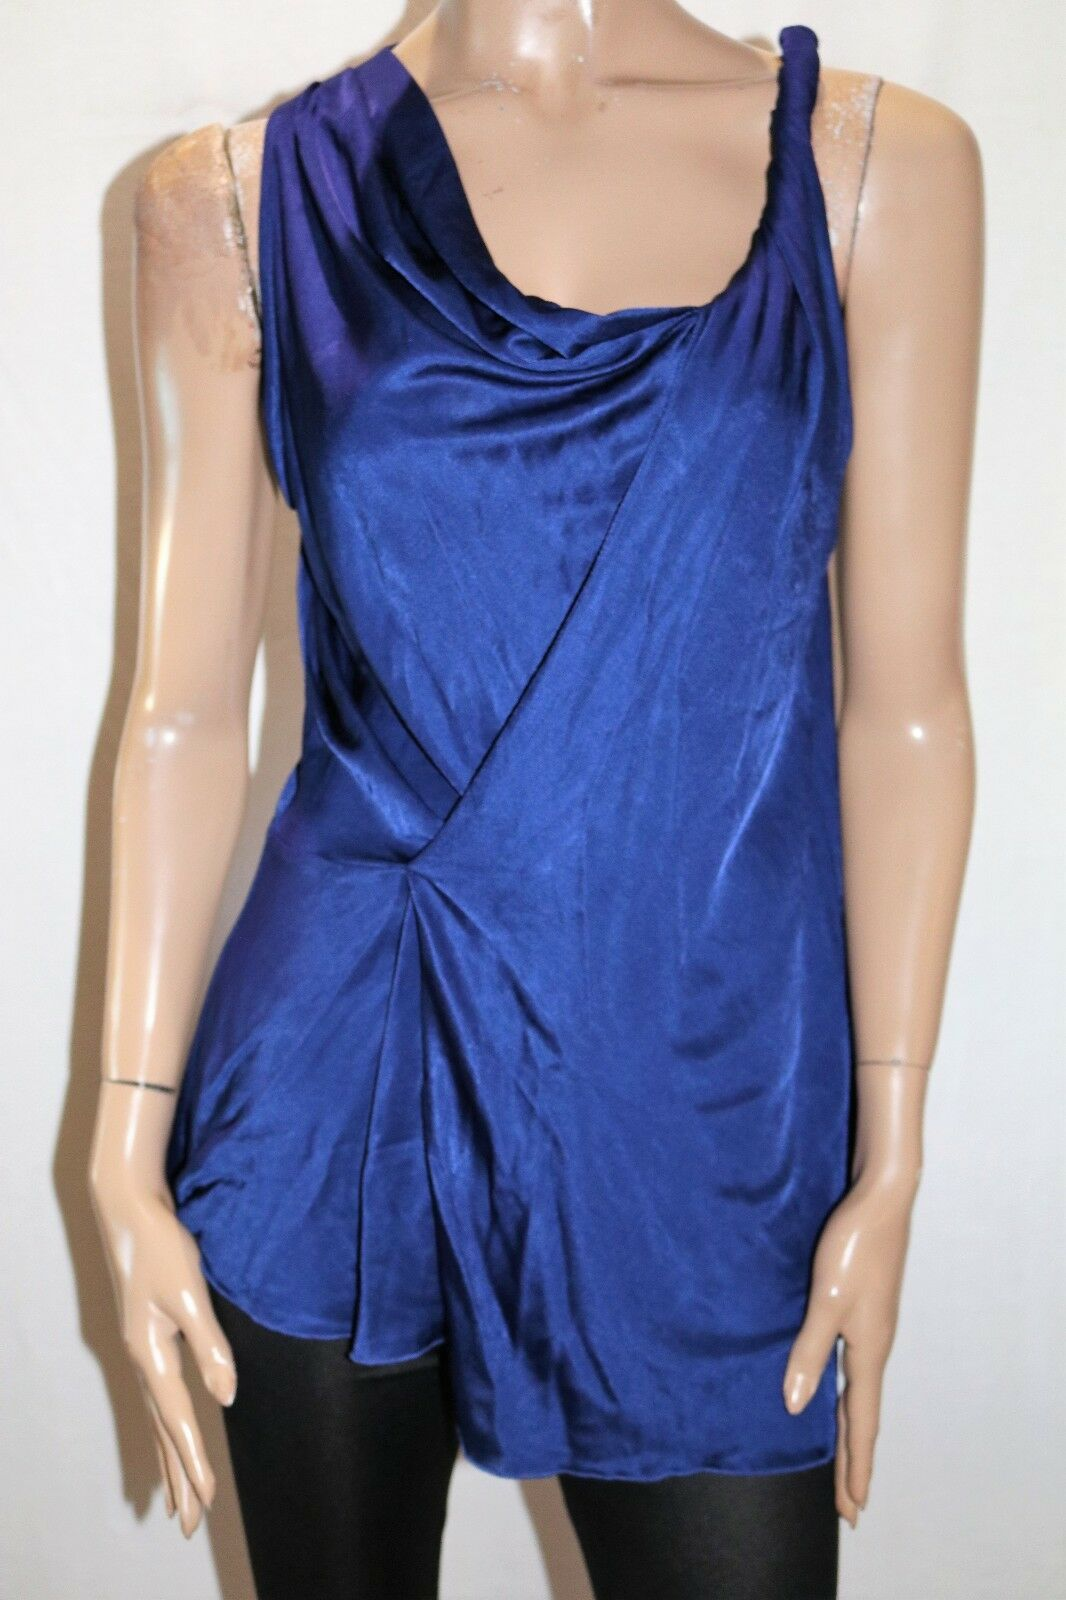 David Lawrence Brand bluee Twisted Shoulder Sleeveless Top Size M BNWT  TL38